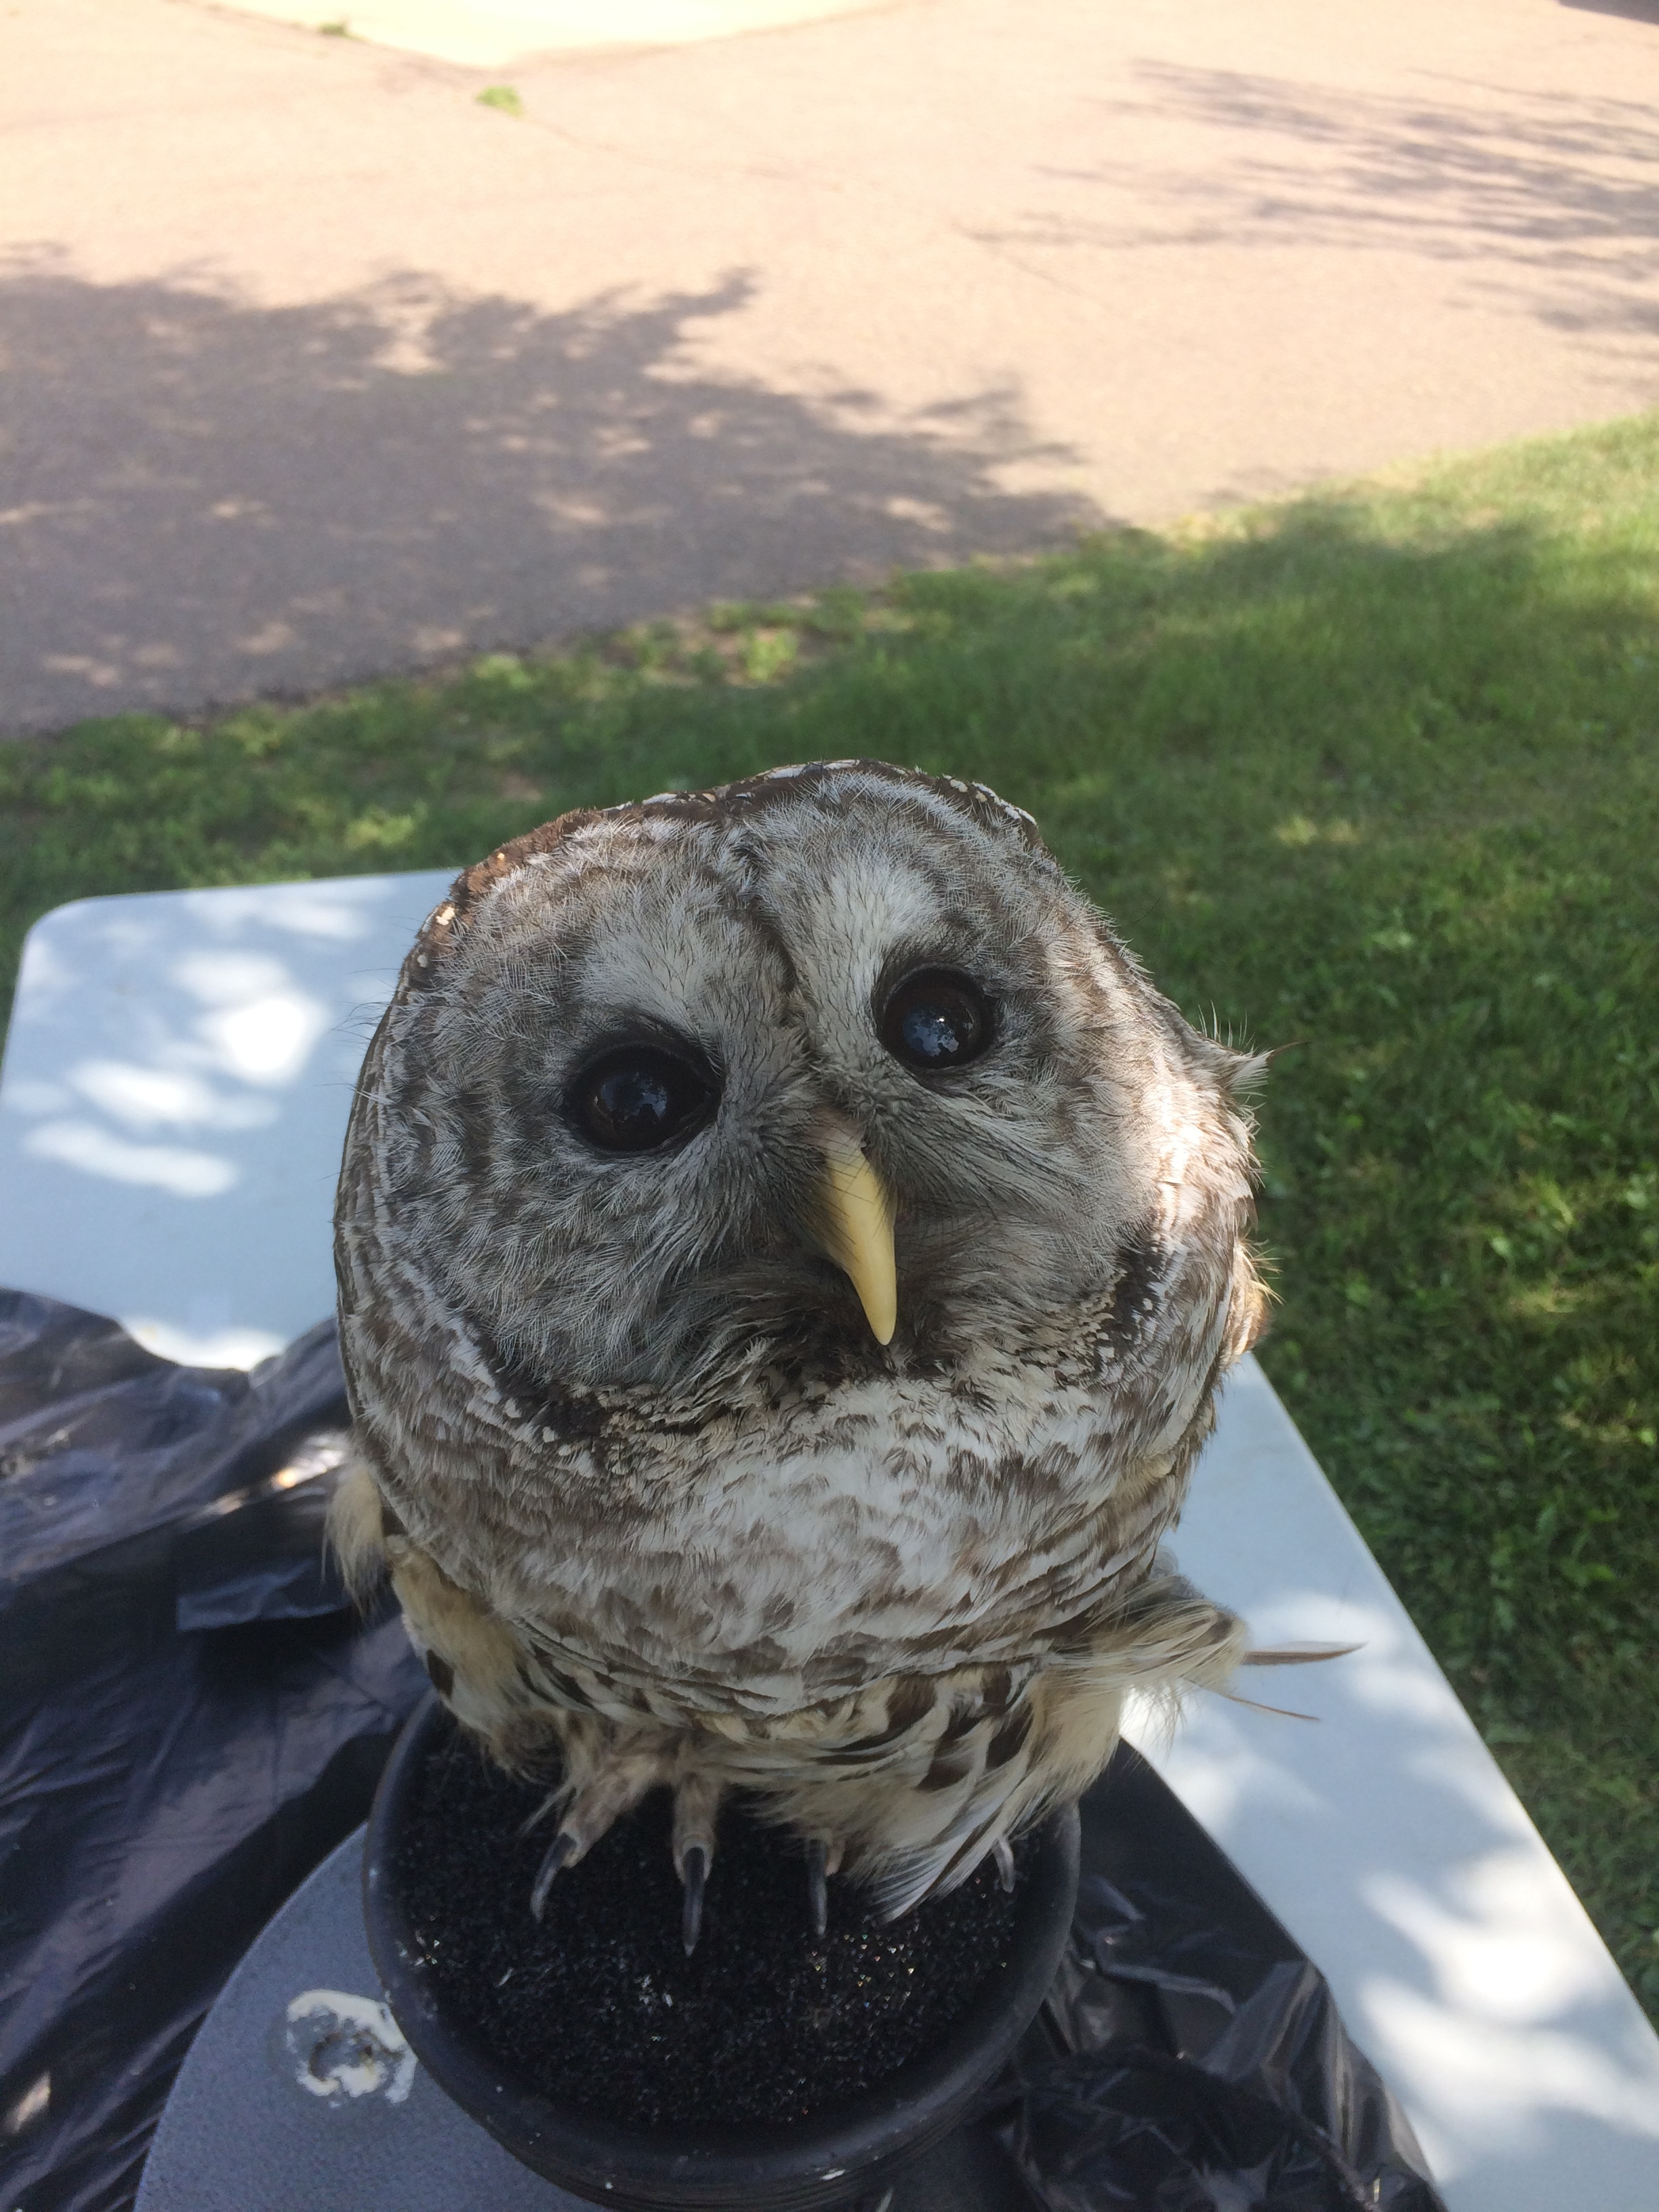 Special guest Colonel the Barred Owl visited during EALTs 10th Anniversary Tours of Ladyflower Gardens